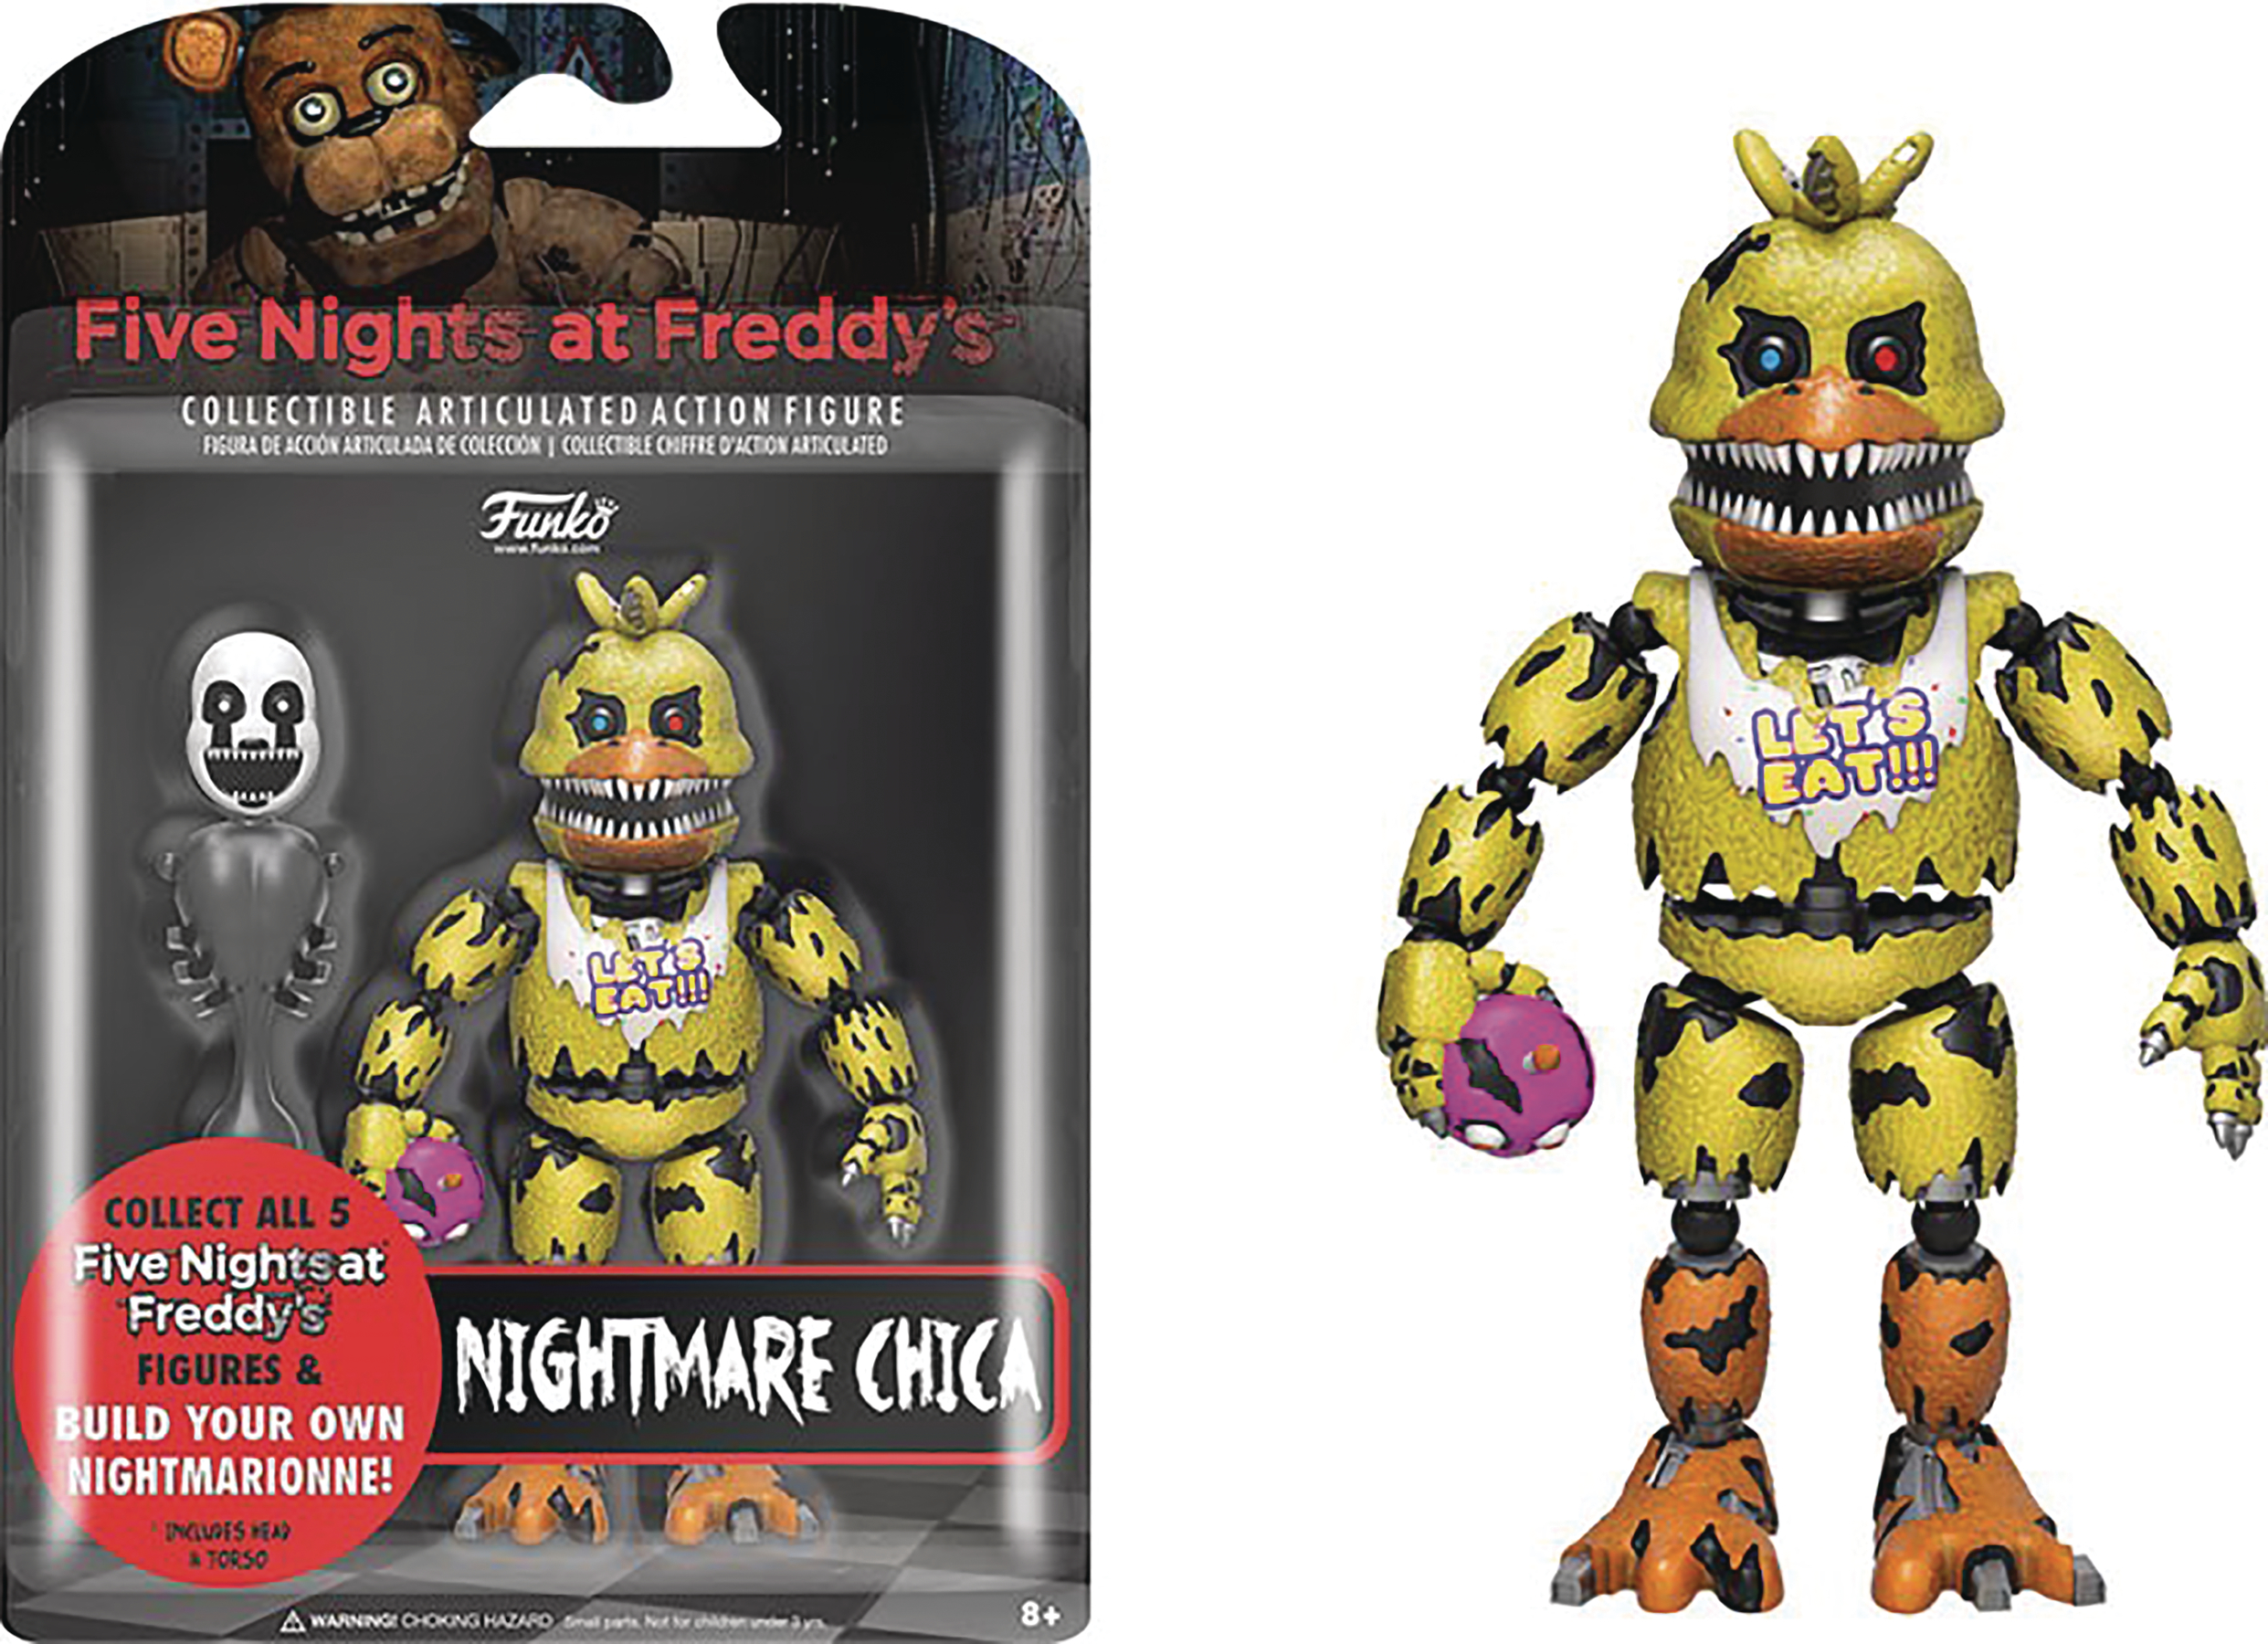 FIVE NIGHTS AT FREDDYS NIGHTMARE CHICA 5IN ACTION FIGURE